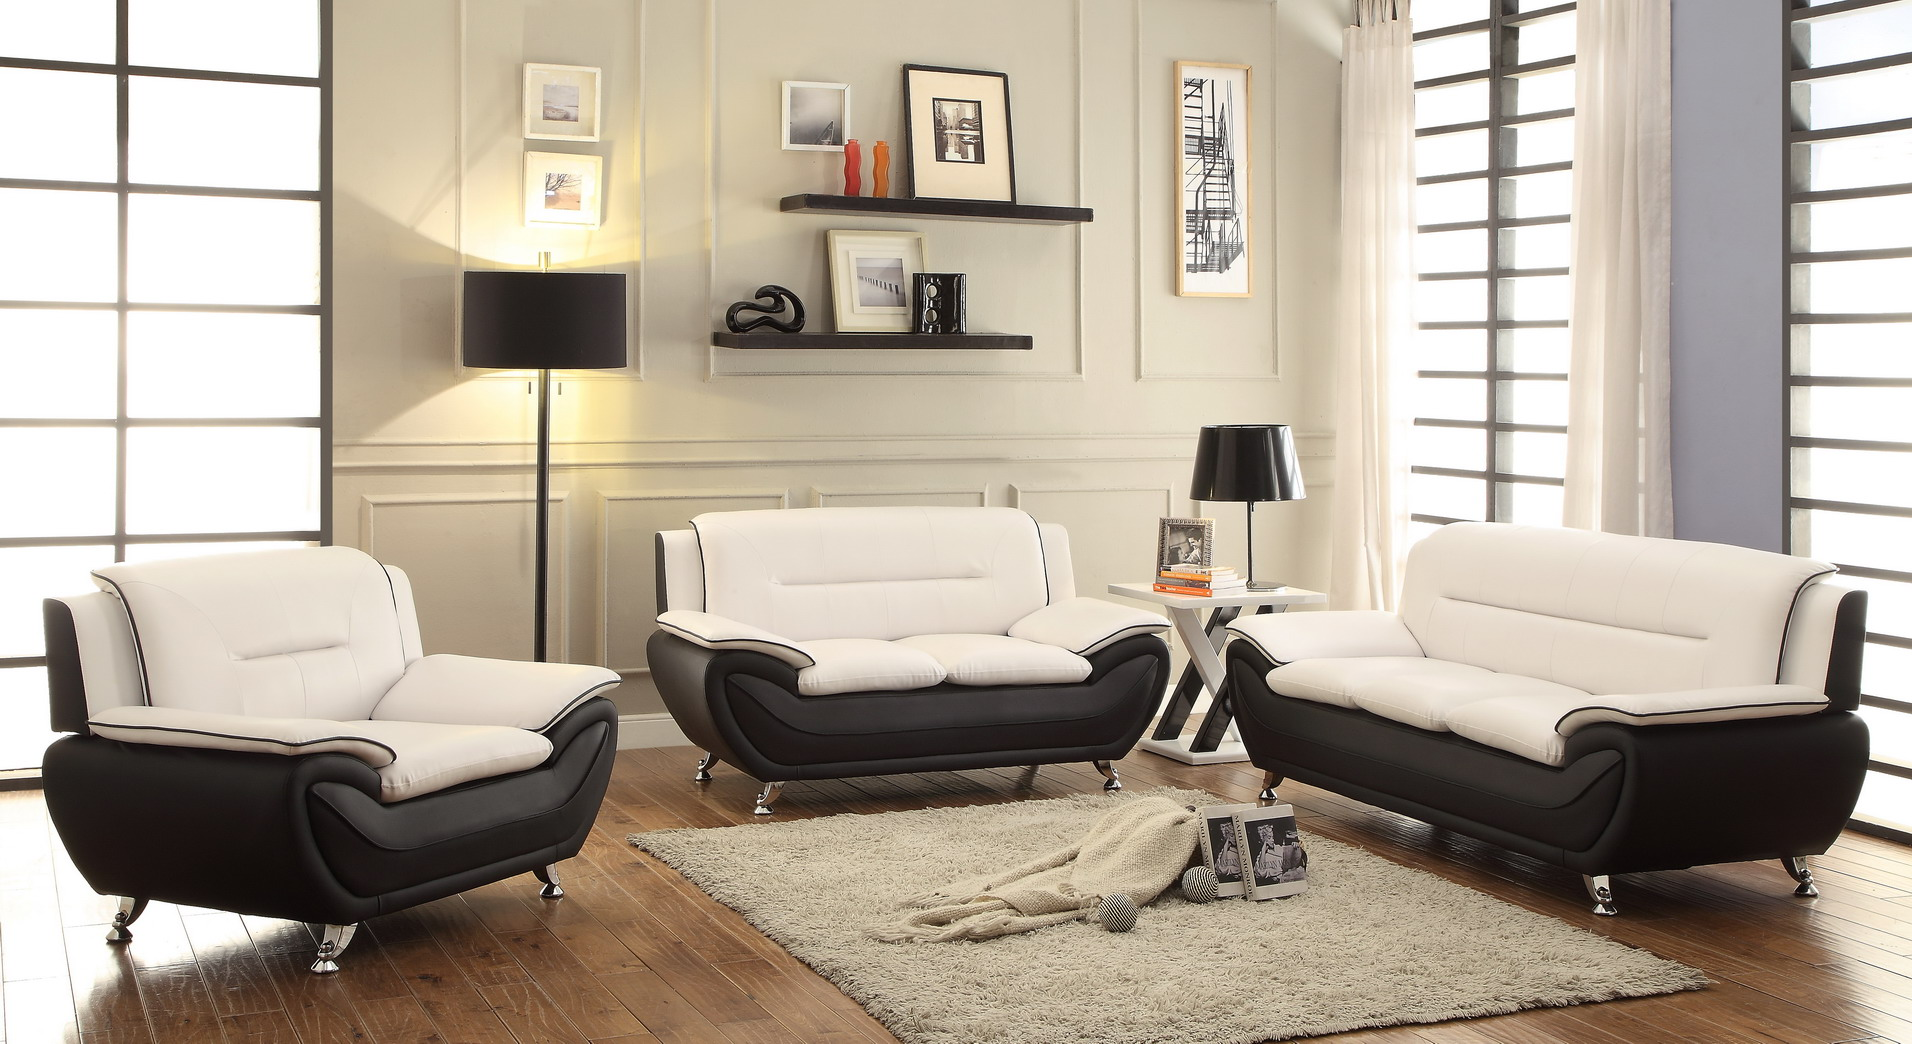 Leather Sectional Sofas Houston. Small Sectional Or An Angled Sofa Ideal For Intimate Settings ...